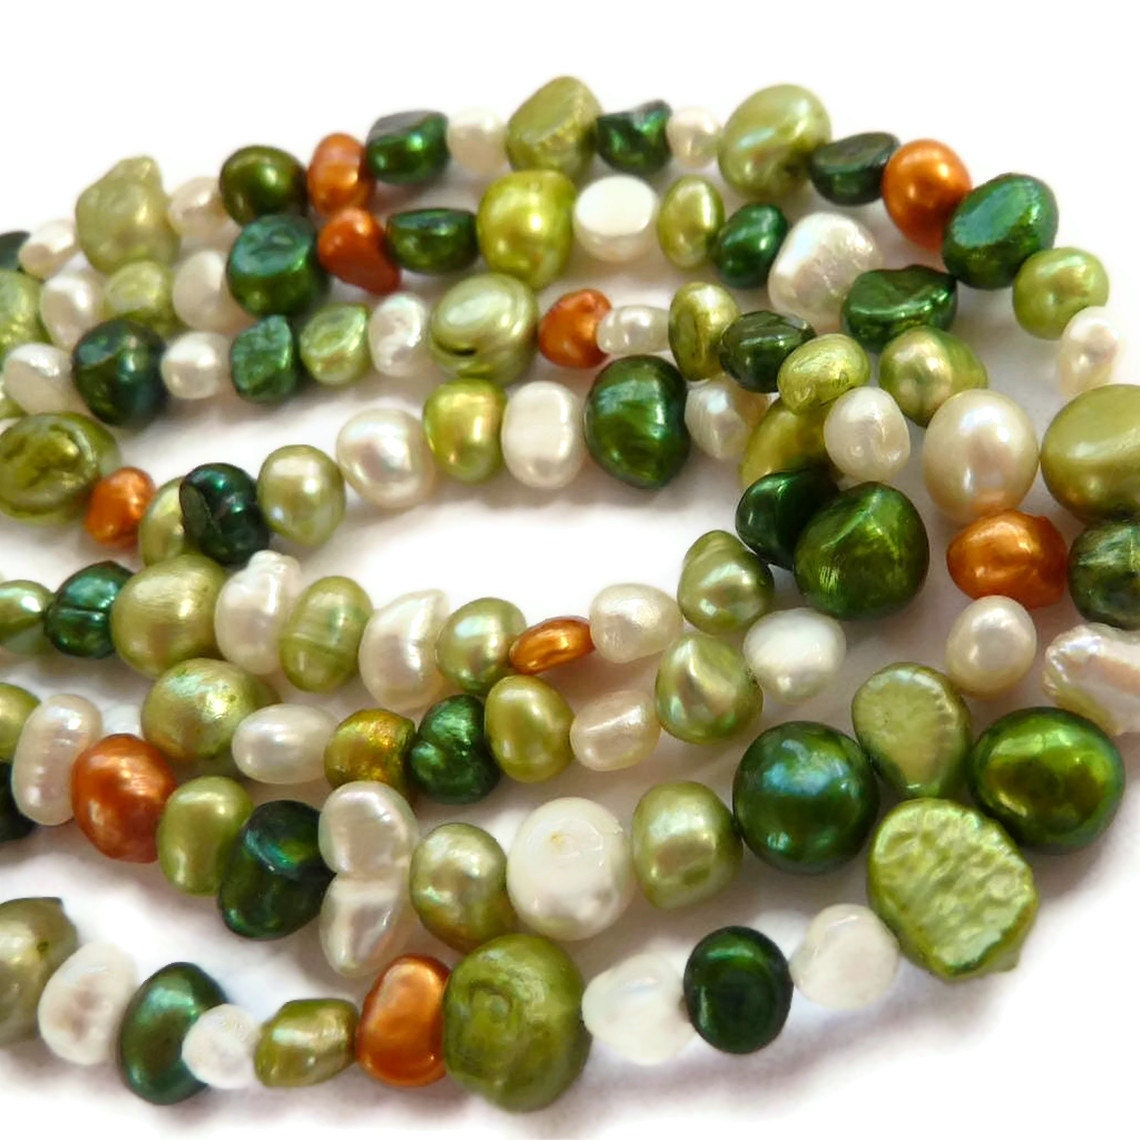 Freshwater Pearls Pearl Beads 5mm 6mm Dark Green, White, Orange, Light Green Color Pearl - PottyMouthGems